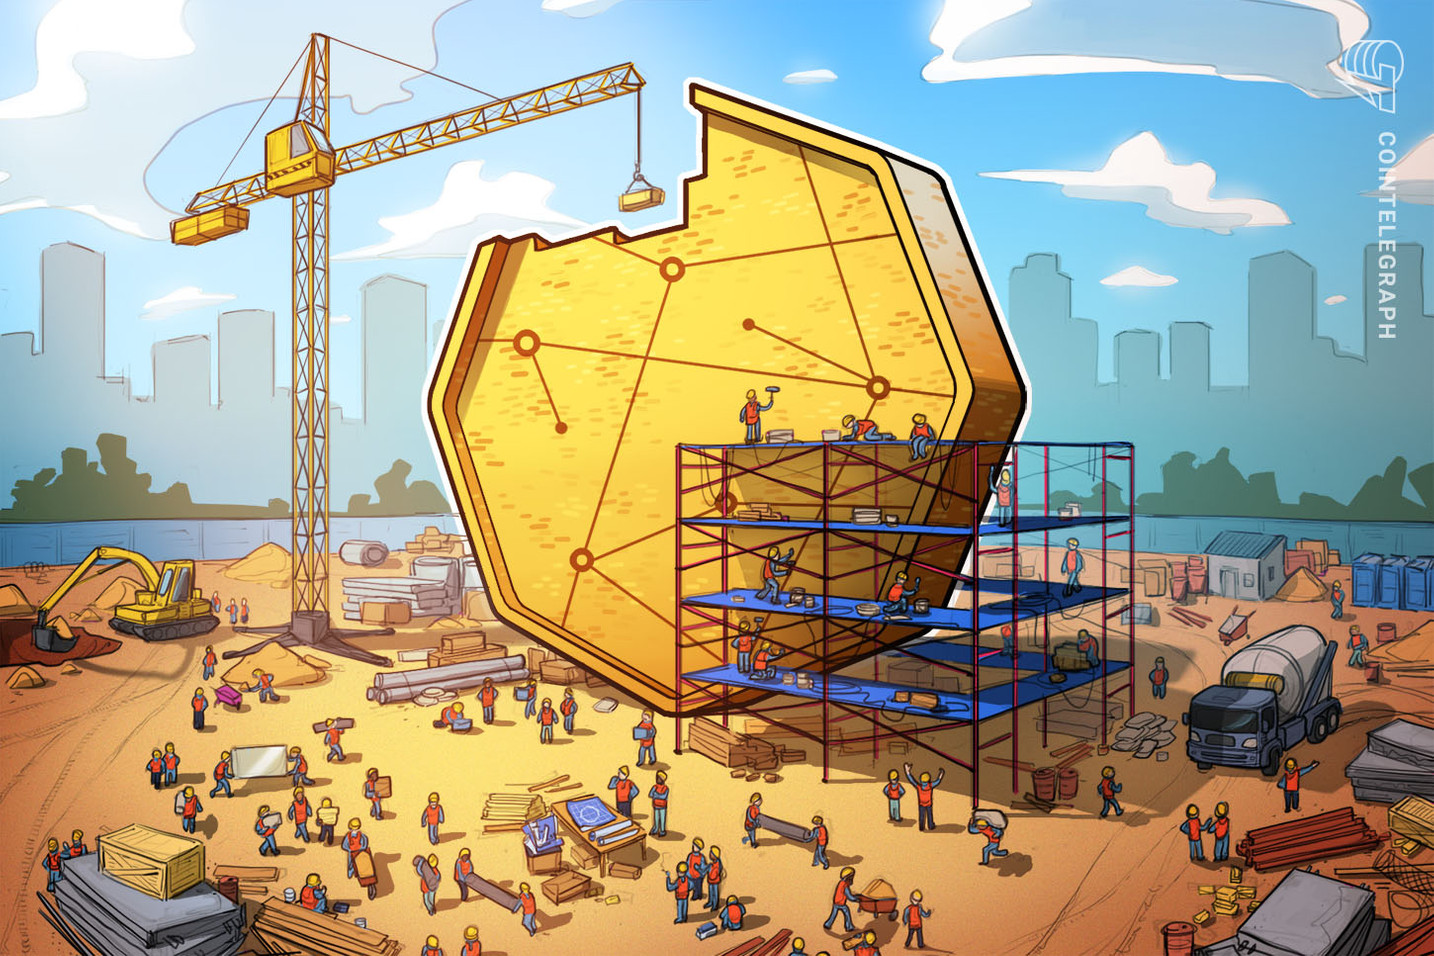 Sony Subsidiary Joins ~$14.5M Funding Round for Bitcoin Bank Bitwala